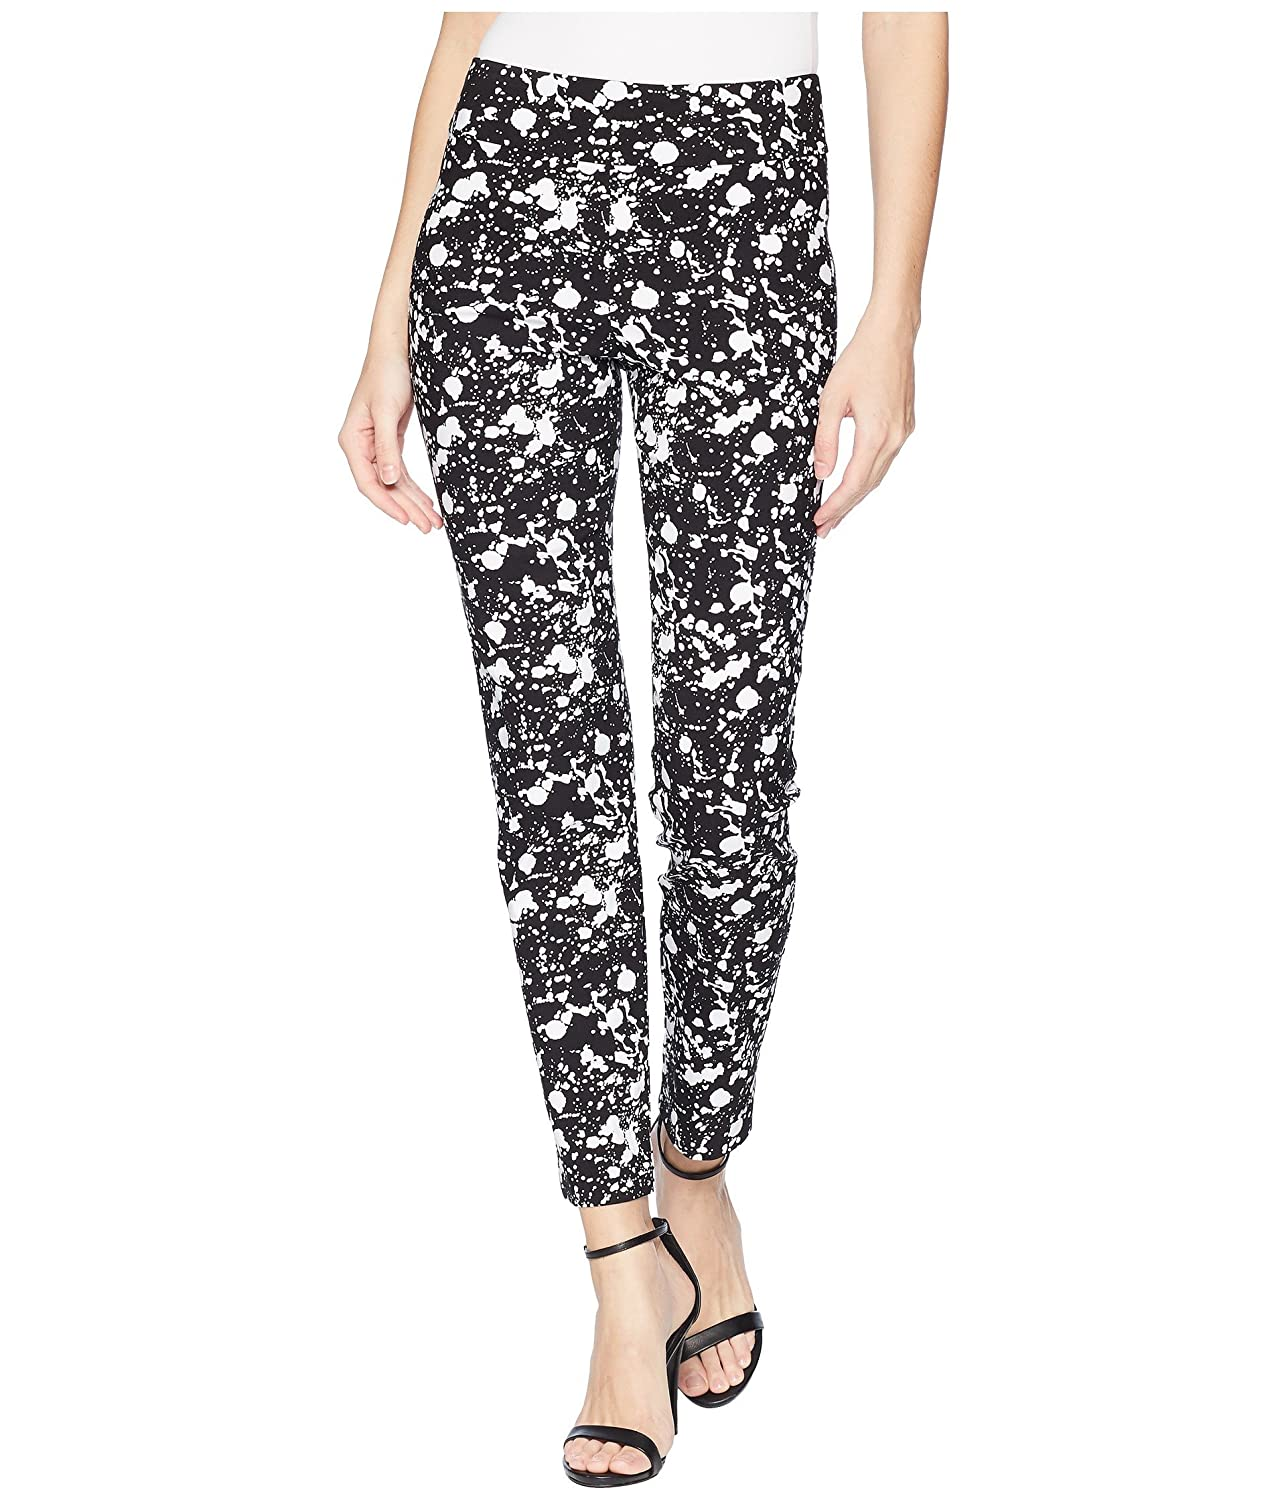 Krazy Larry PANTS レディース B076934HBF 2 x 28L|Black Splatter Black Splatter 2 x 28L